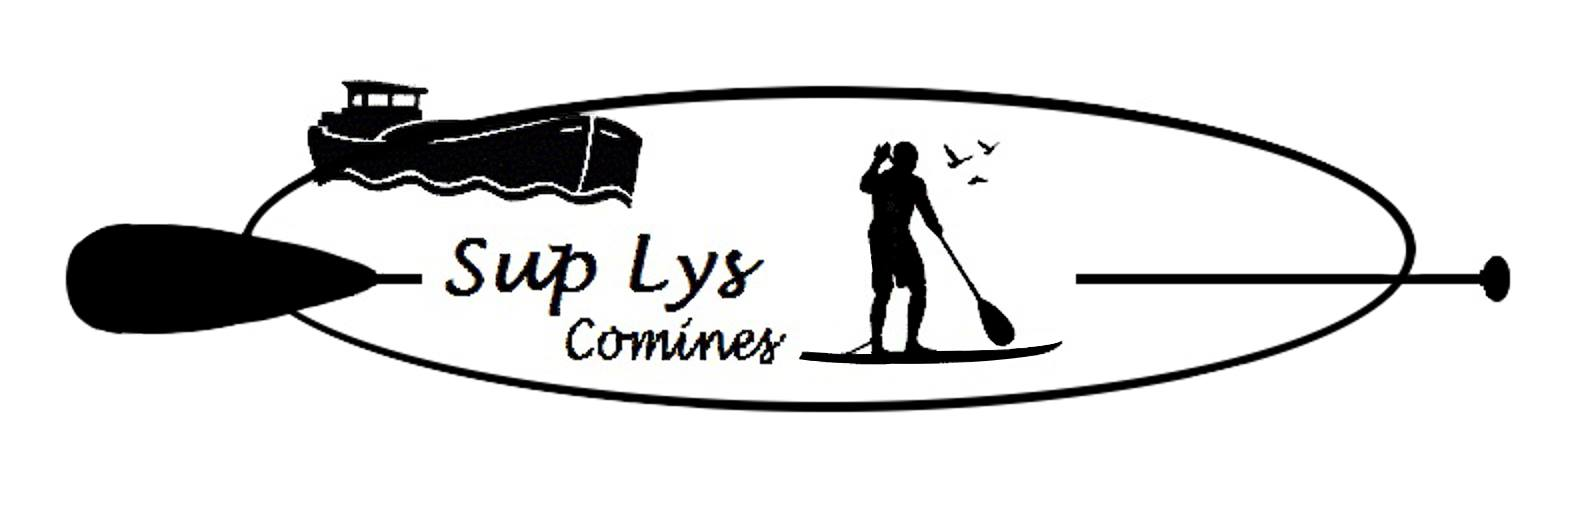 Logo Sup Lys Comines